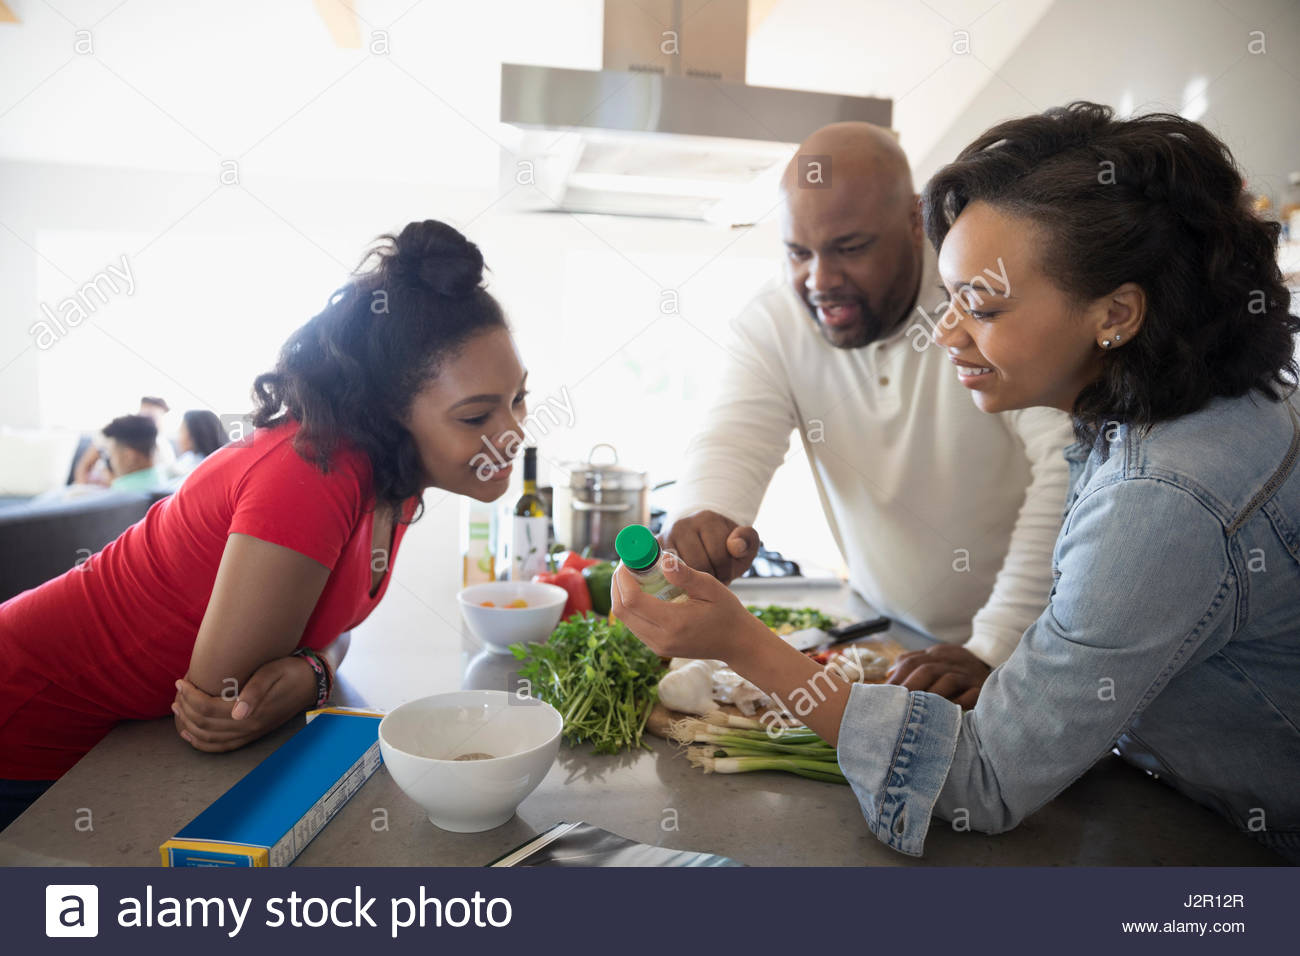 African American family cooking, looking at bottle in kitchen - Stock Image